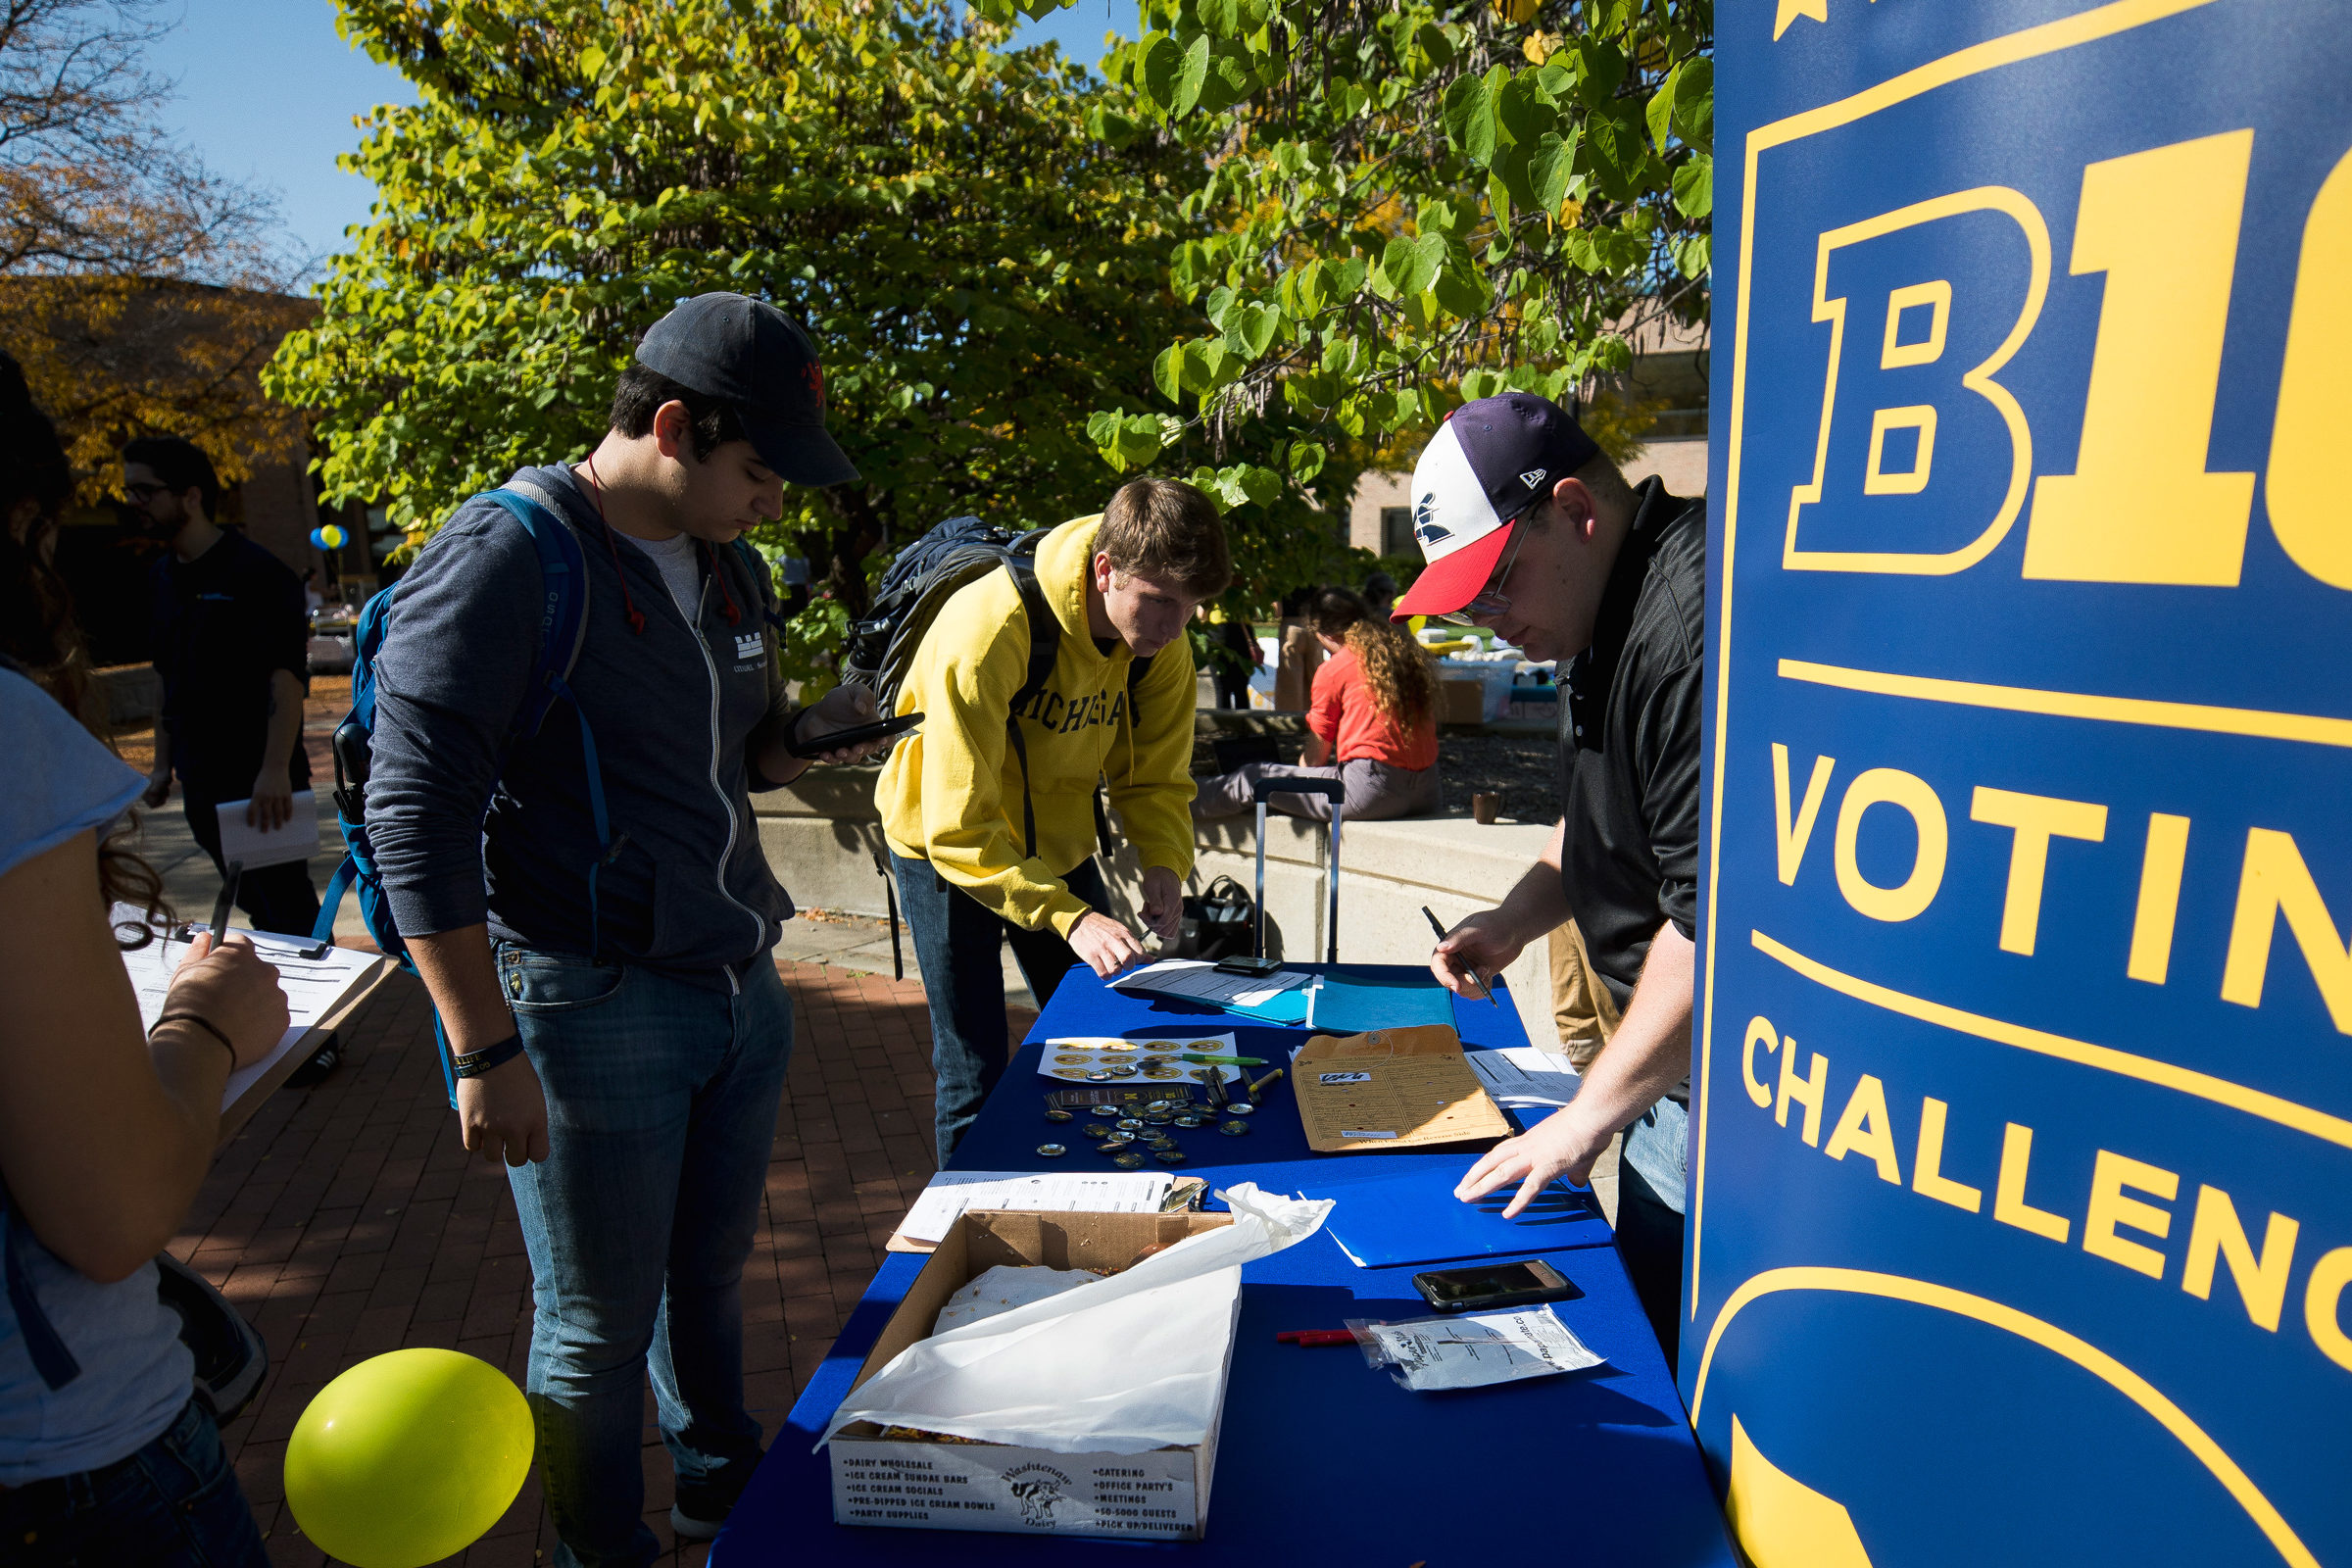 Beyond college midterms, North Campus students are focused on midterm elections